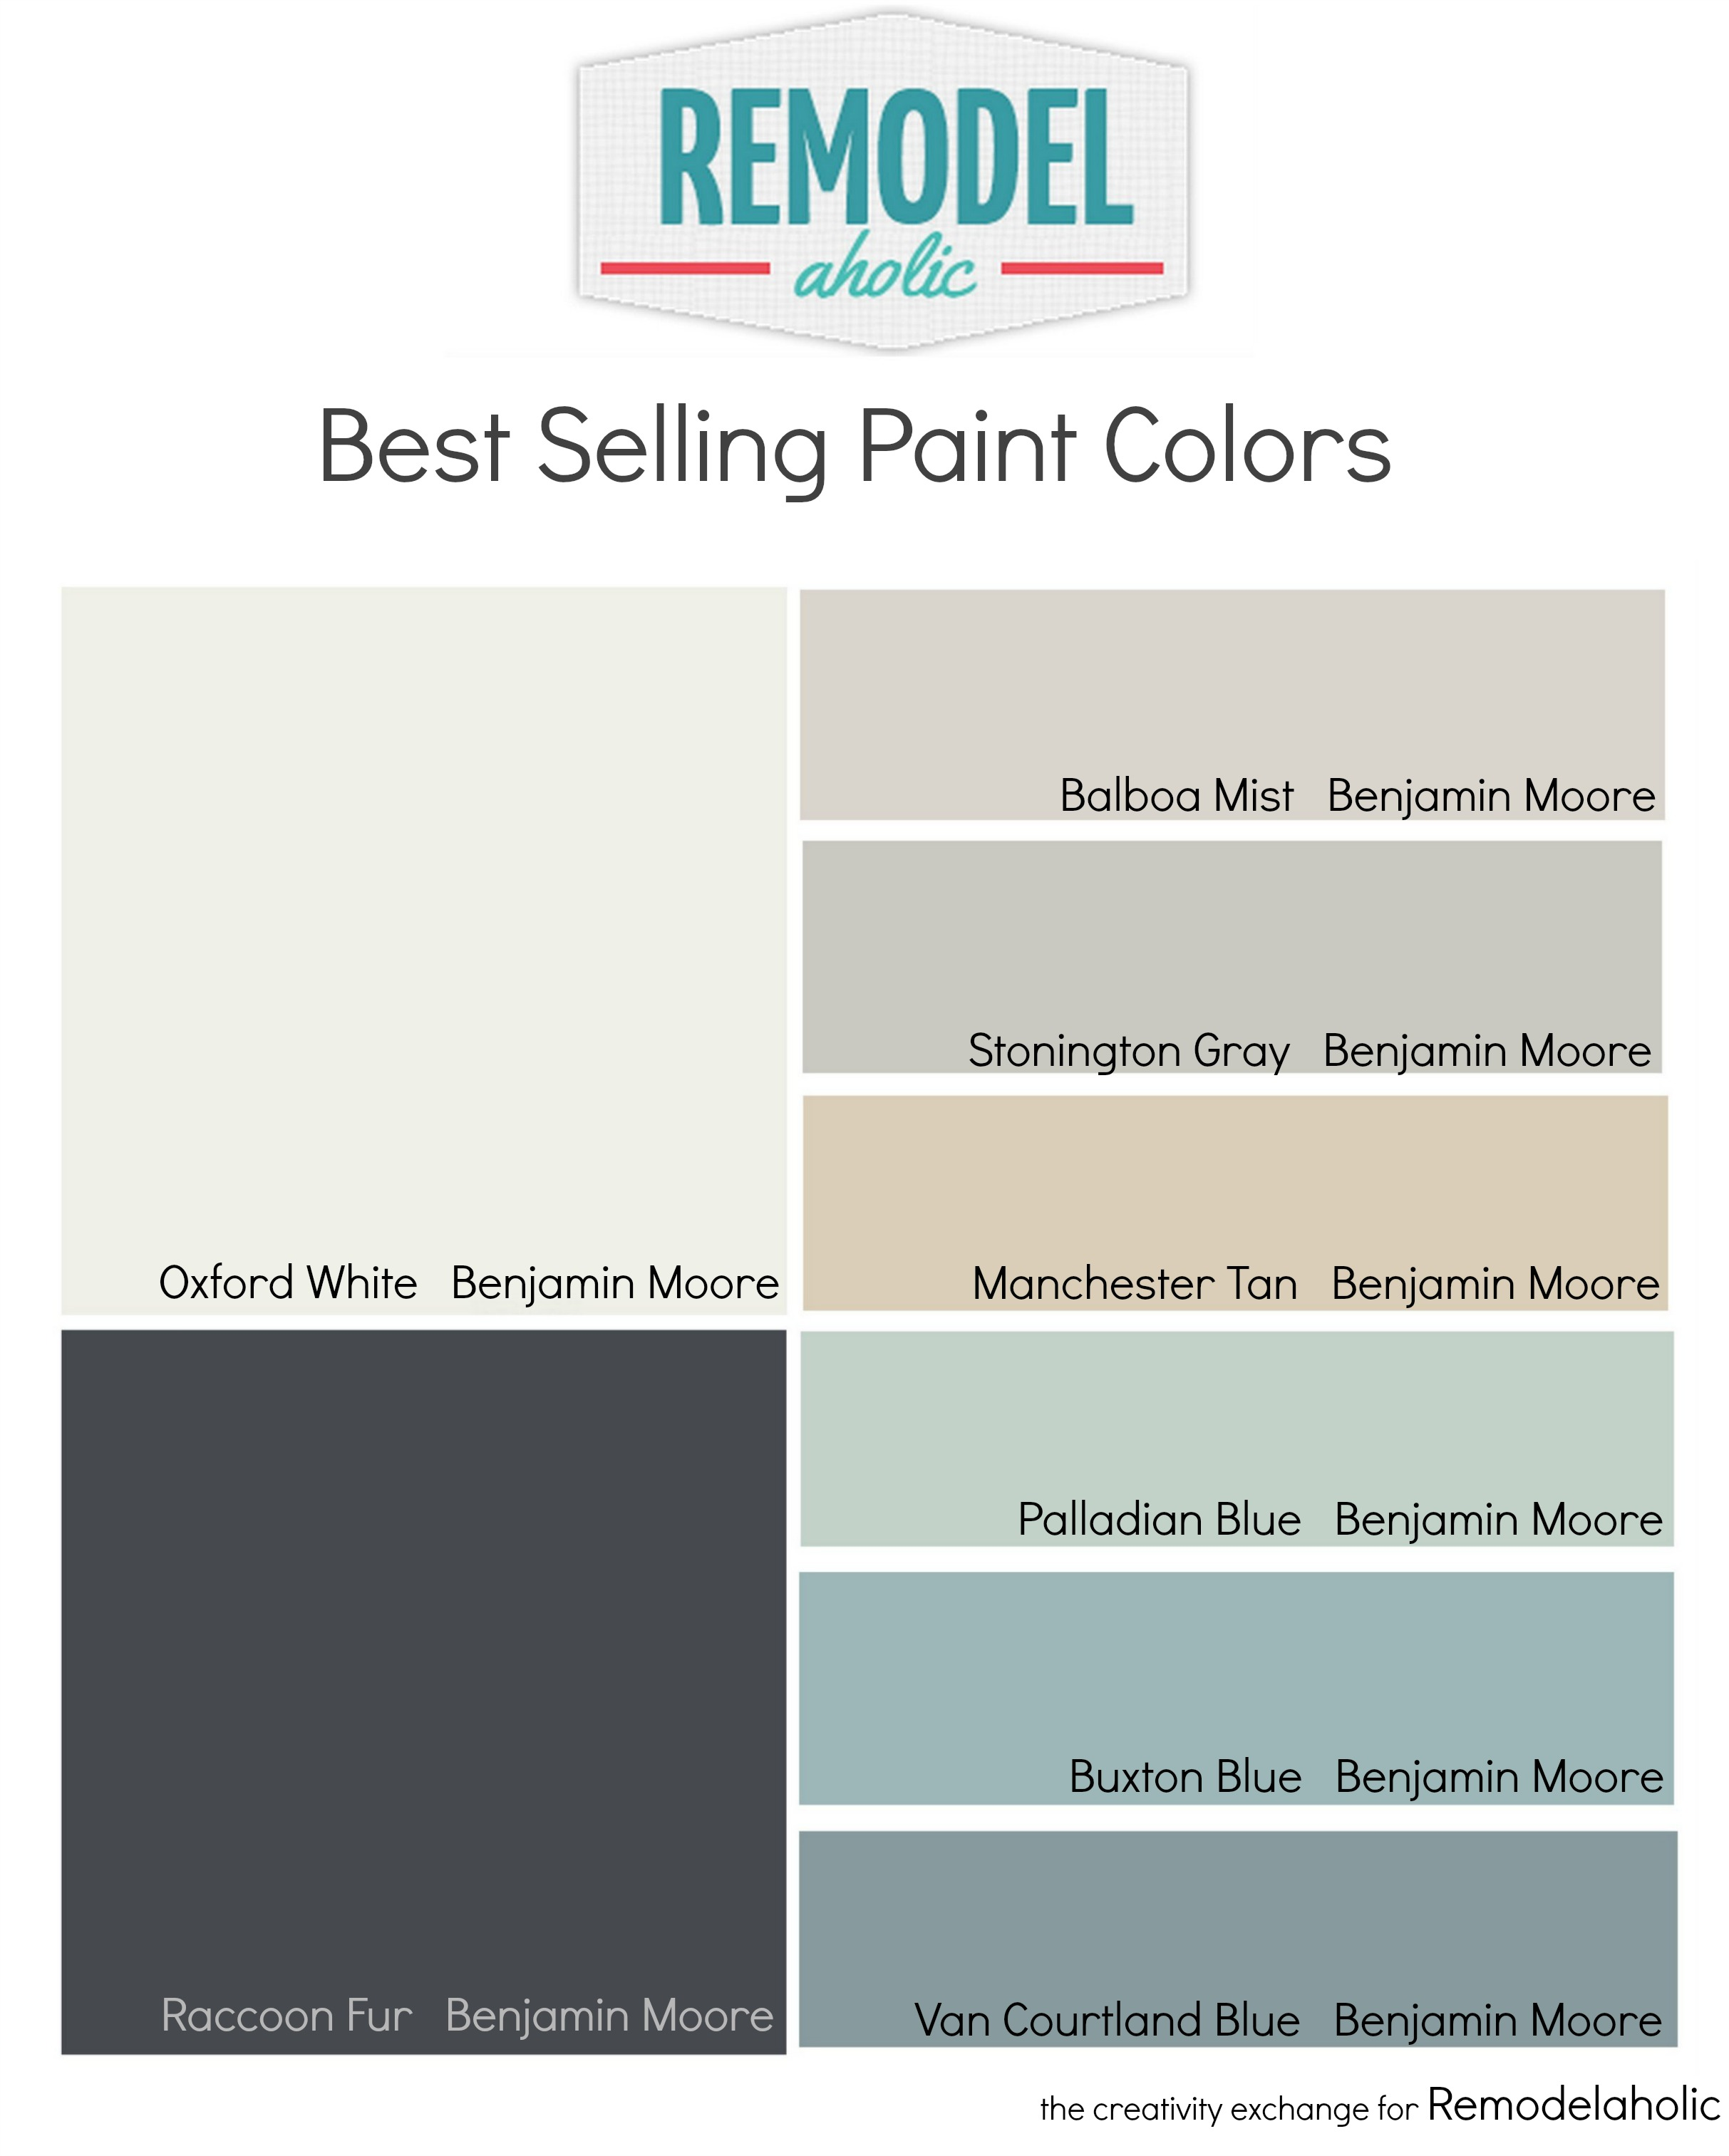 Most Popular Paint Colors Custom Remodelaholic  Most Popular And Best Selling Paint Colors 2017